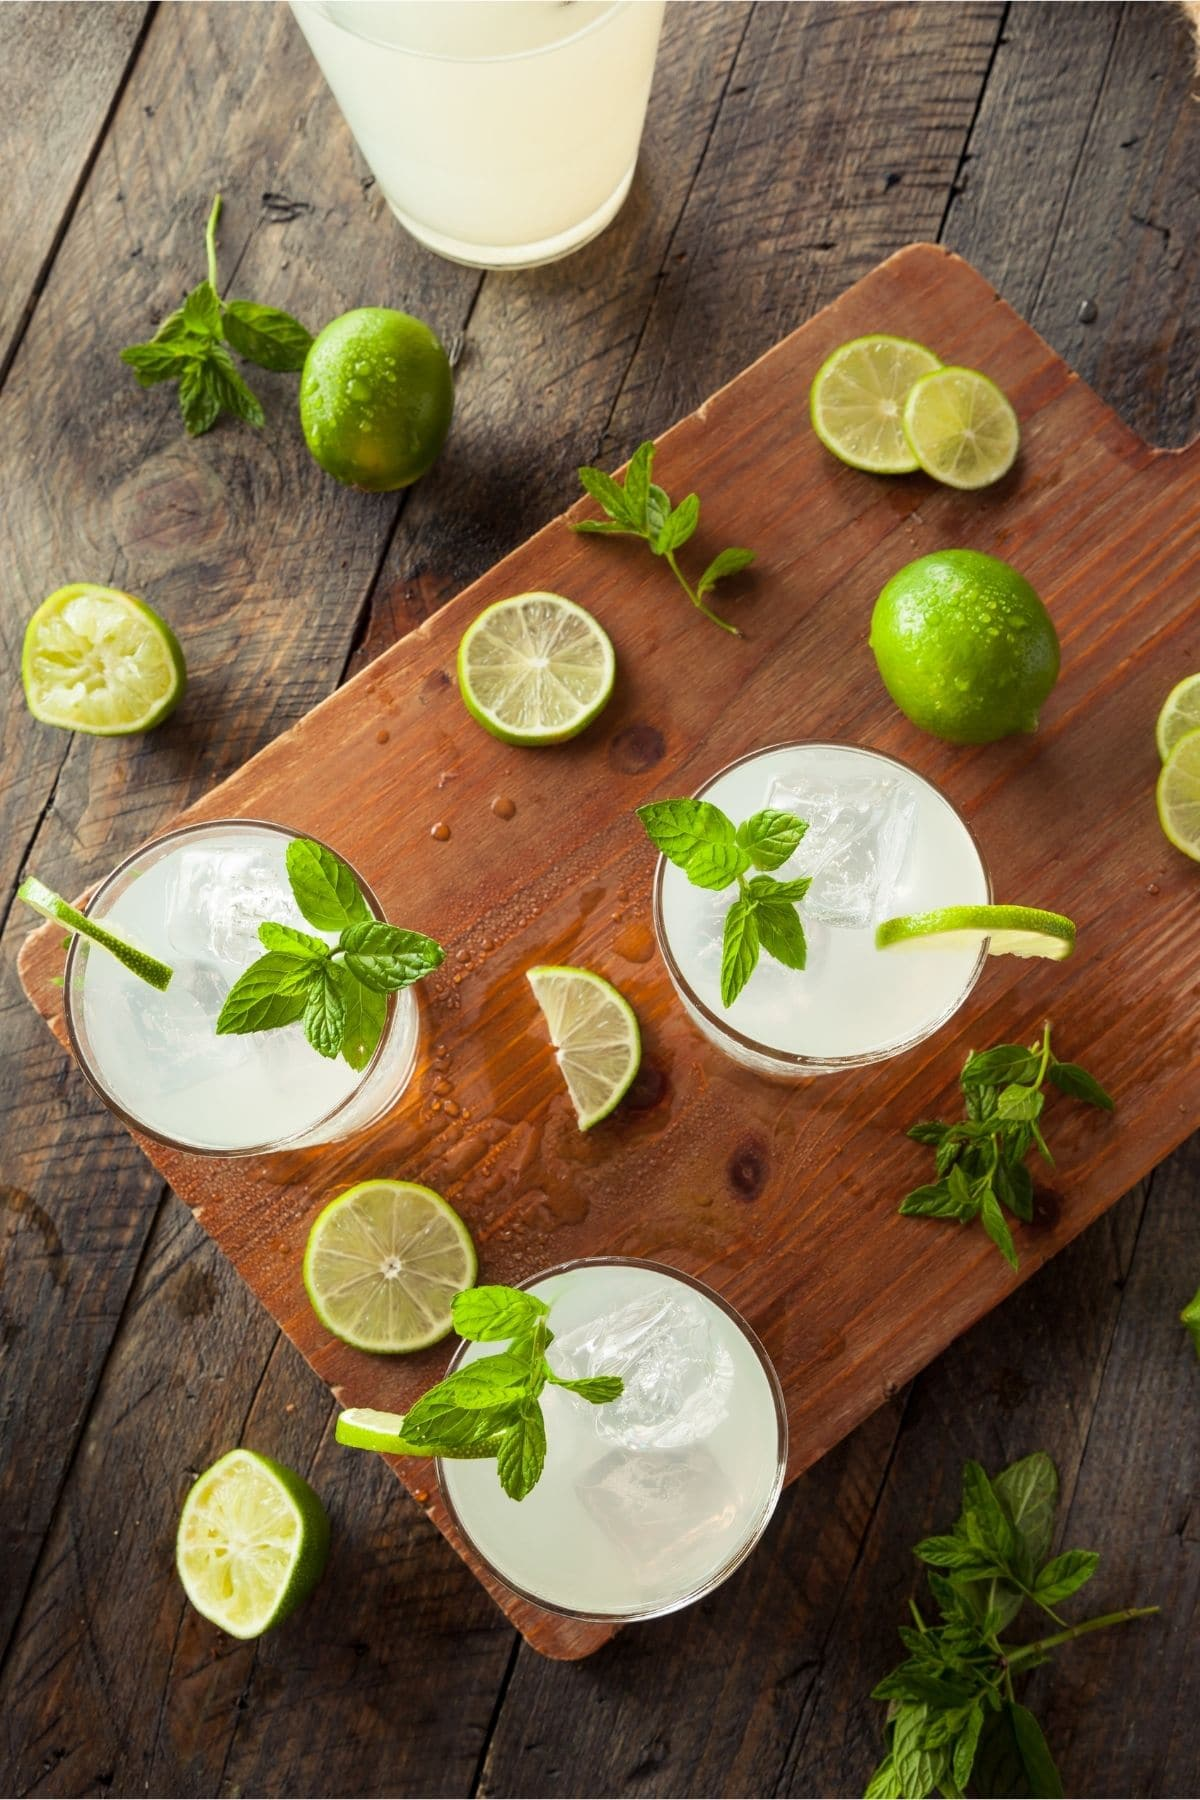 GLASSES OF LIMEADE FROM OVERHEAD WITH LIMES